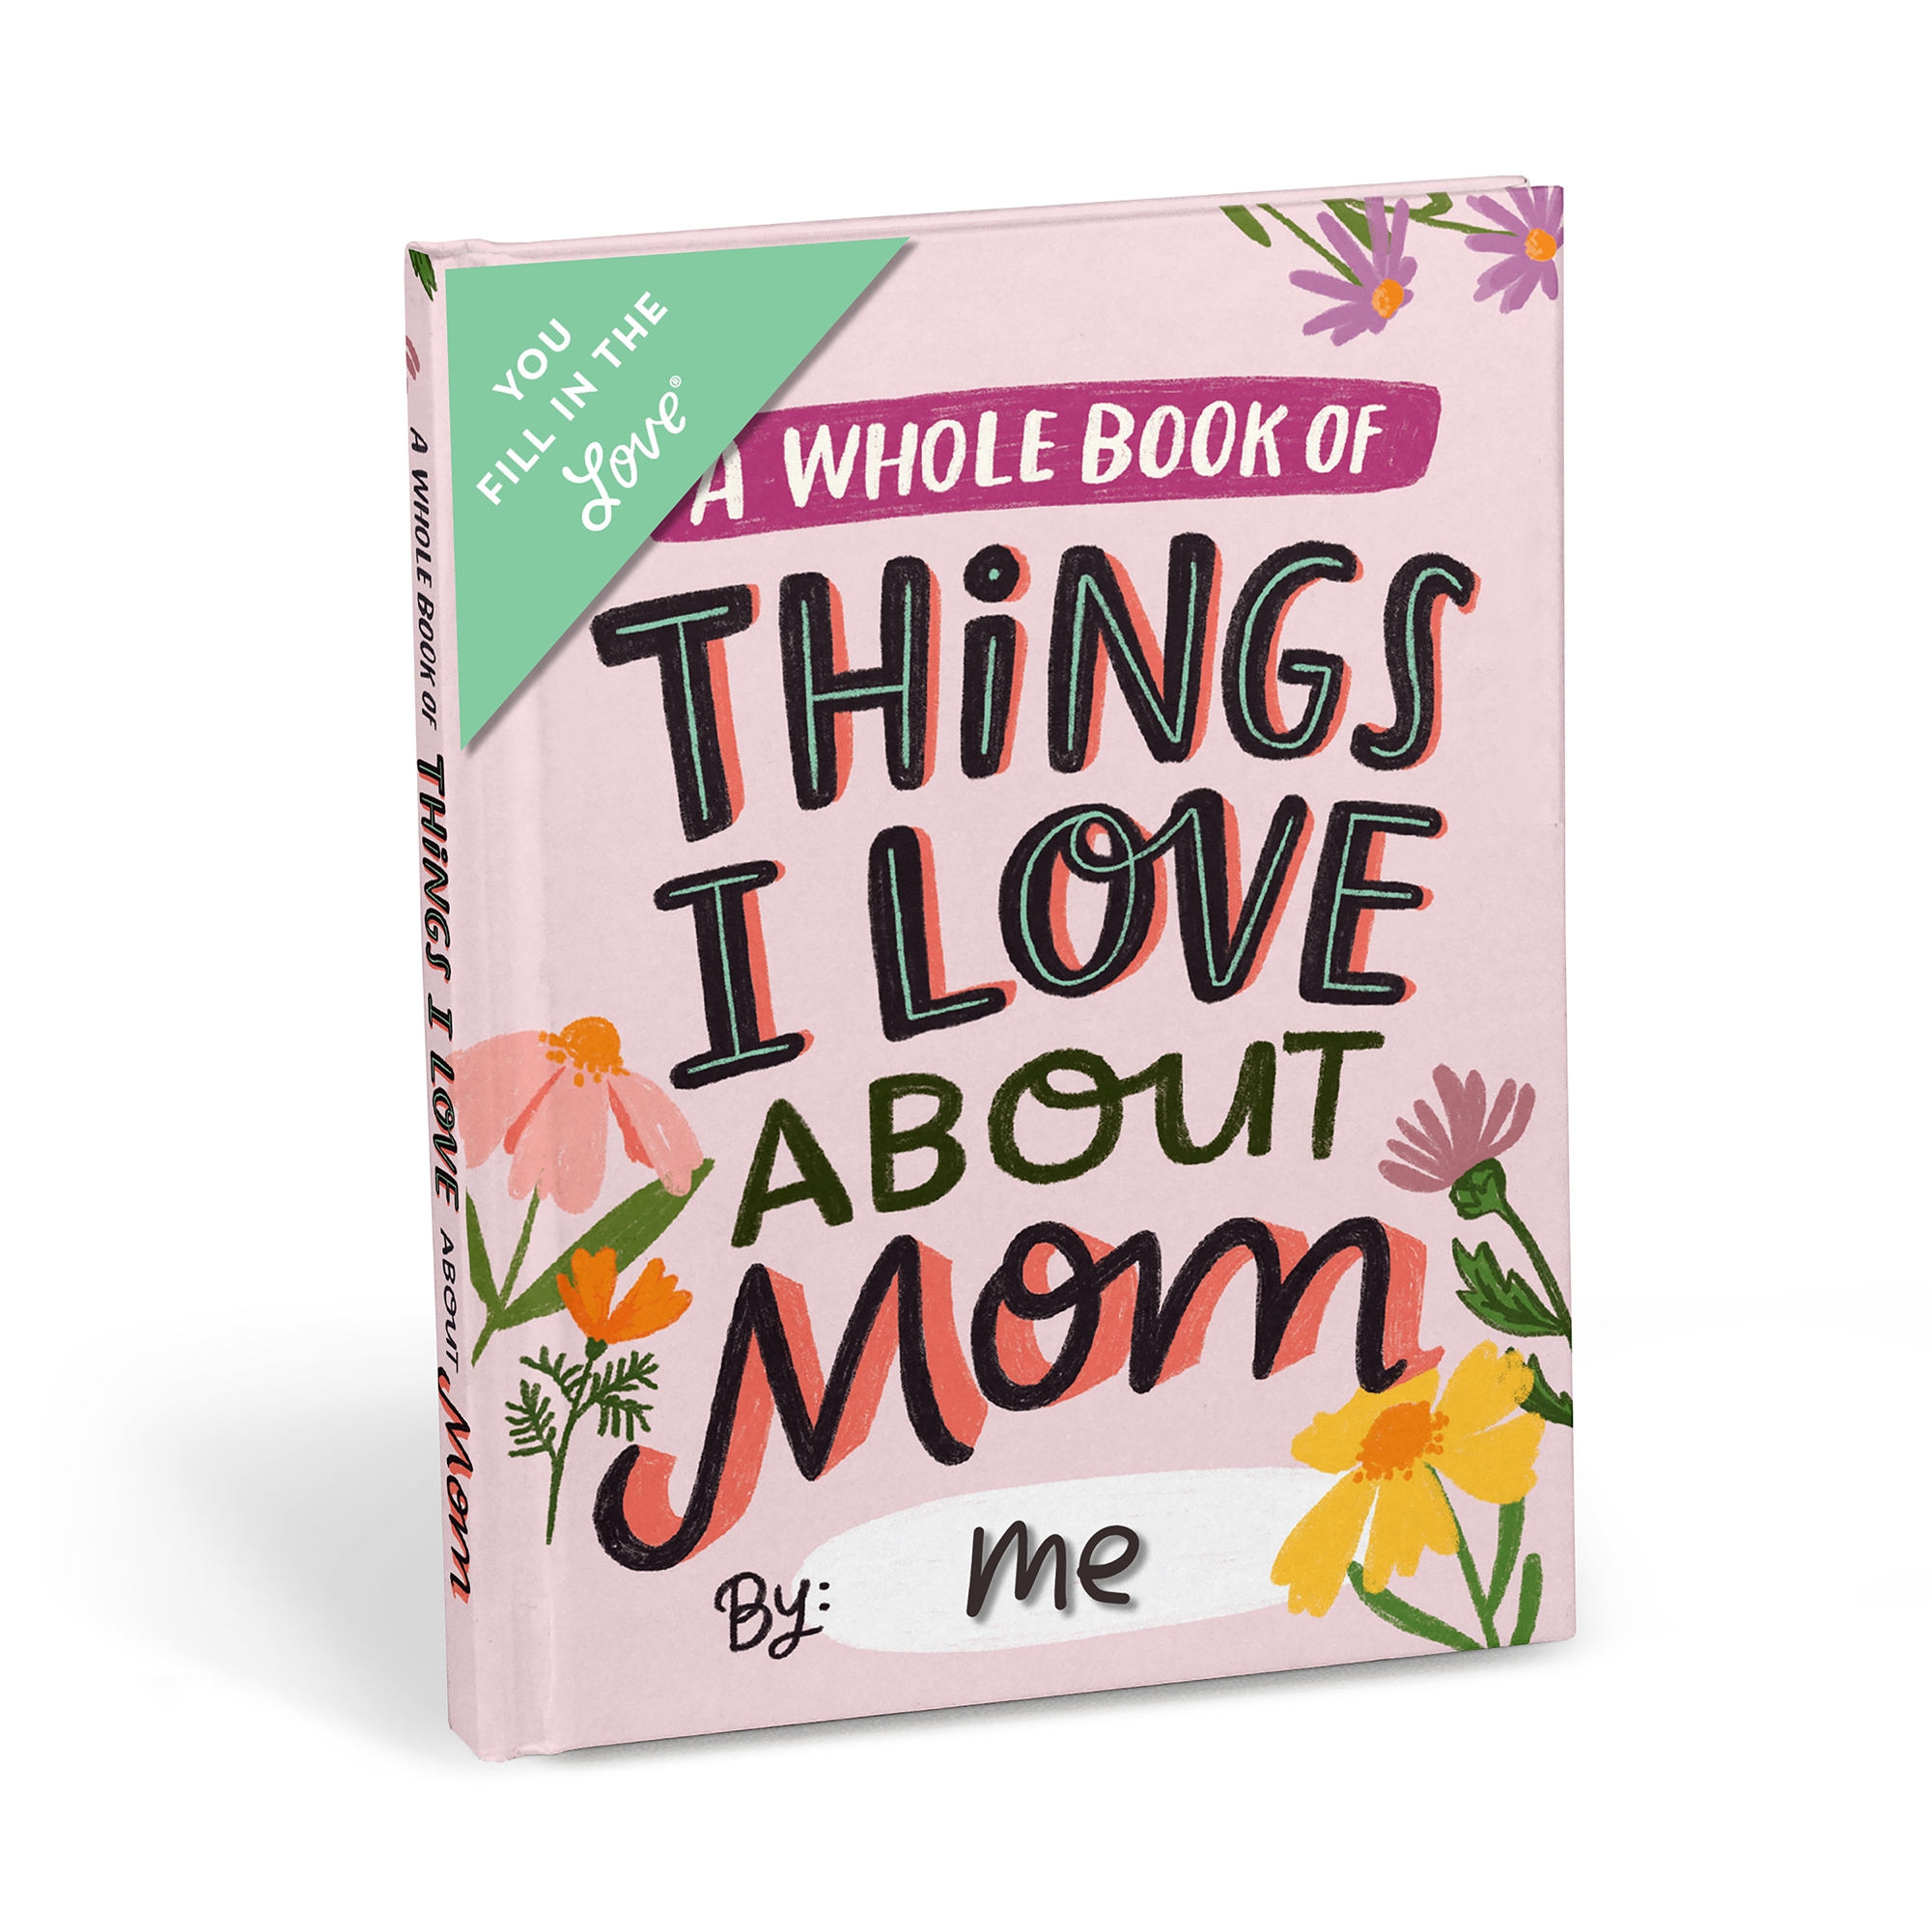 Emily-McDowell-&-Friends-About-Mom-Fill-in-the-Love-Book - Make Mother's Day personal with a fill-in-the-blank book.